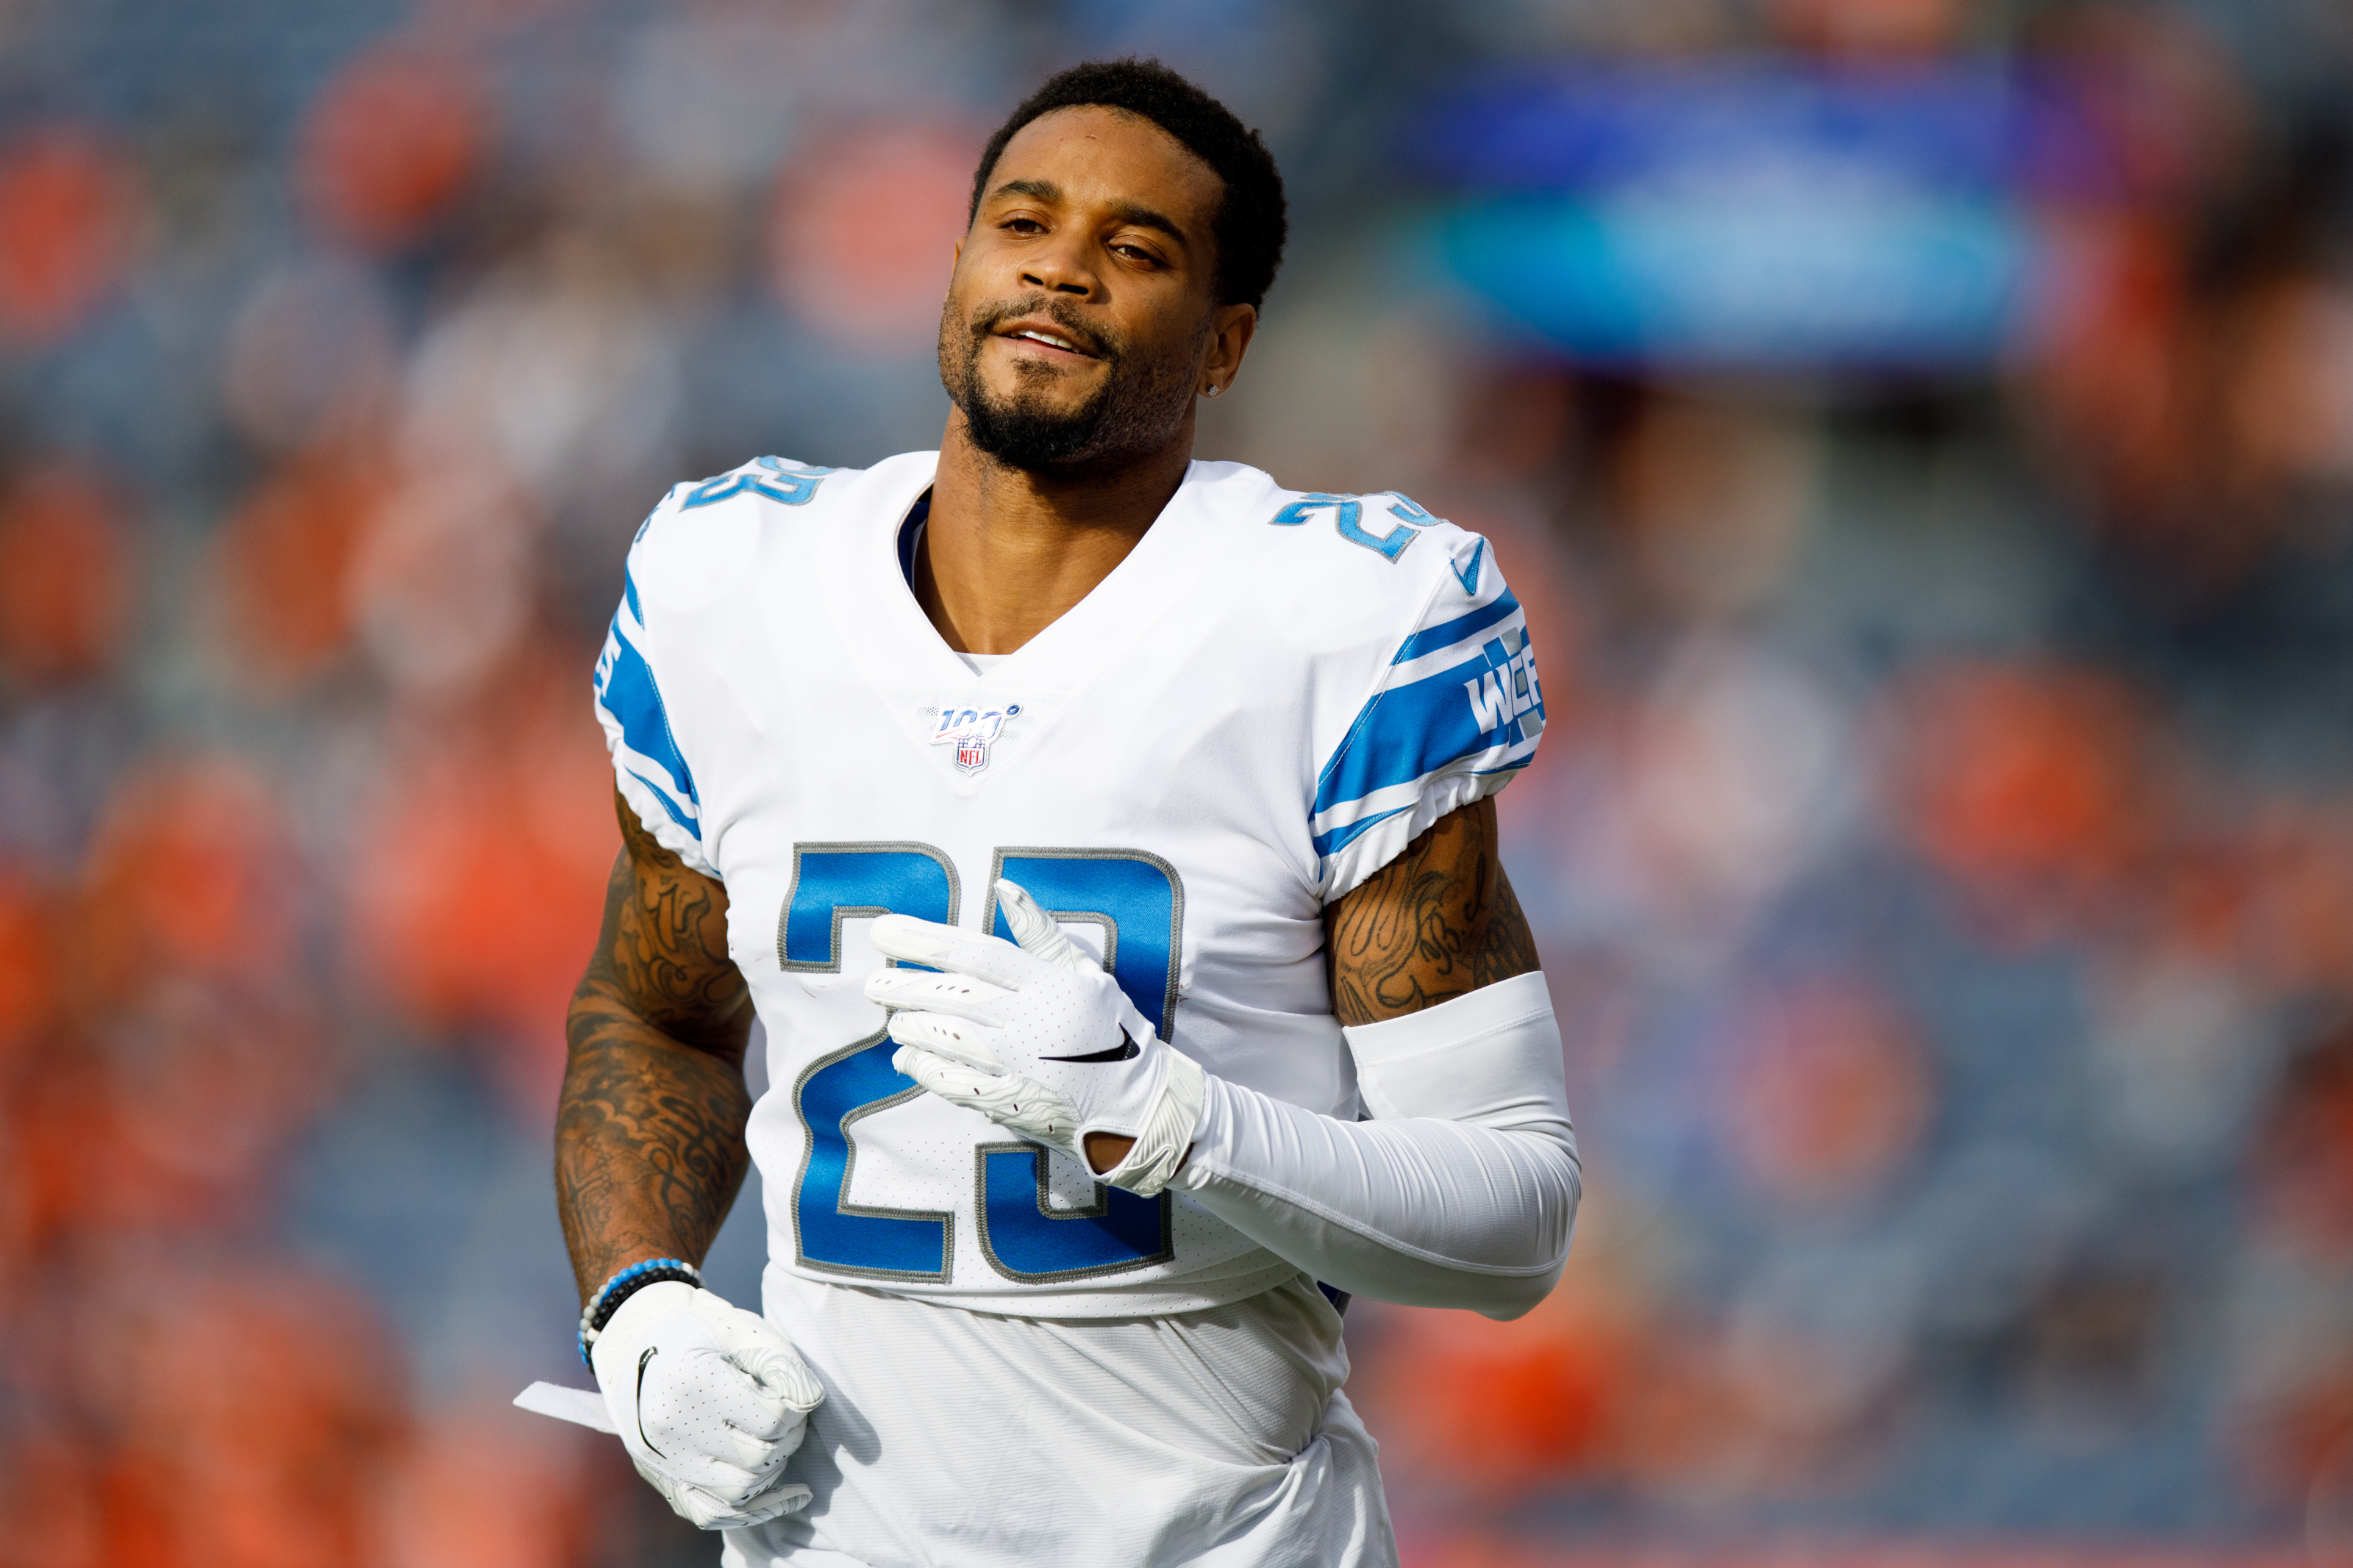 Detroit Lions: The trade market is set for Darius Slay